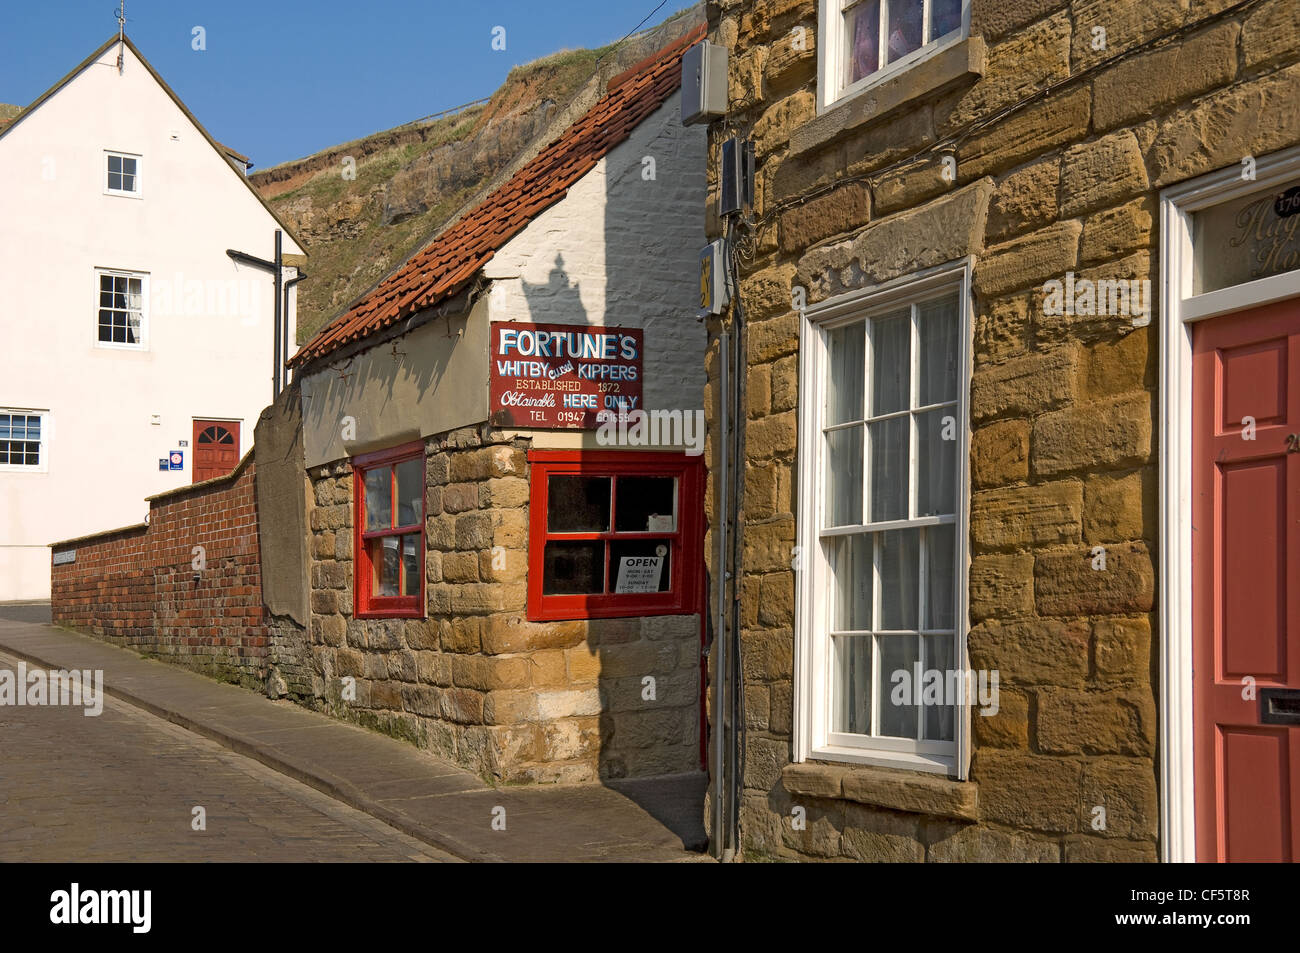 Fortune's traditional smoked kipper shop established in 1872. - Stock Image